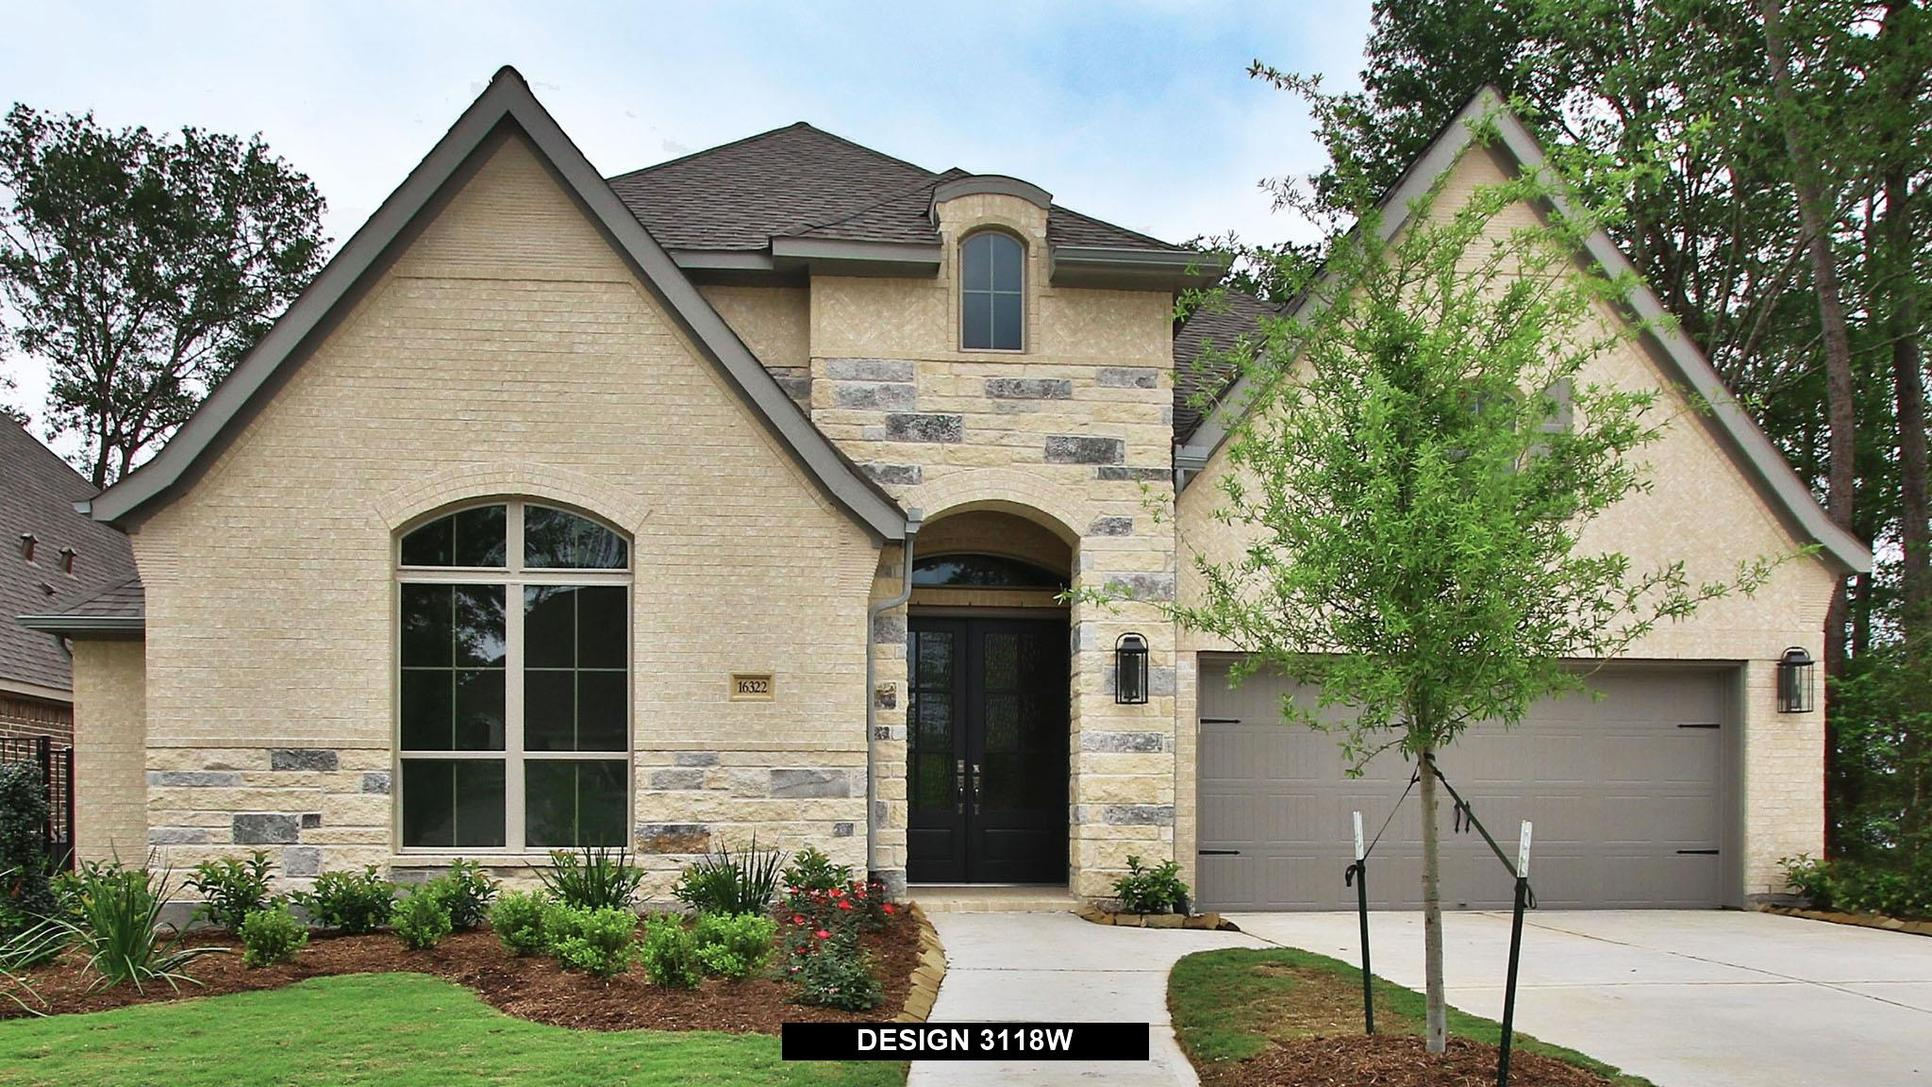 Plan 3118W:Representative photo.  Features and specifications may vary by community.